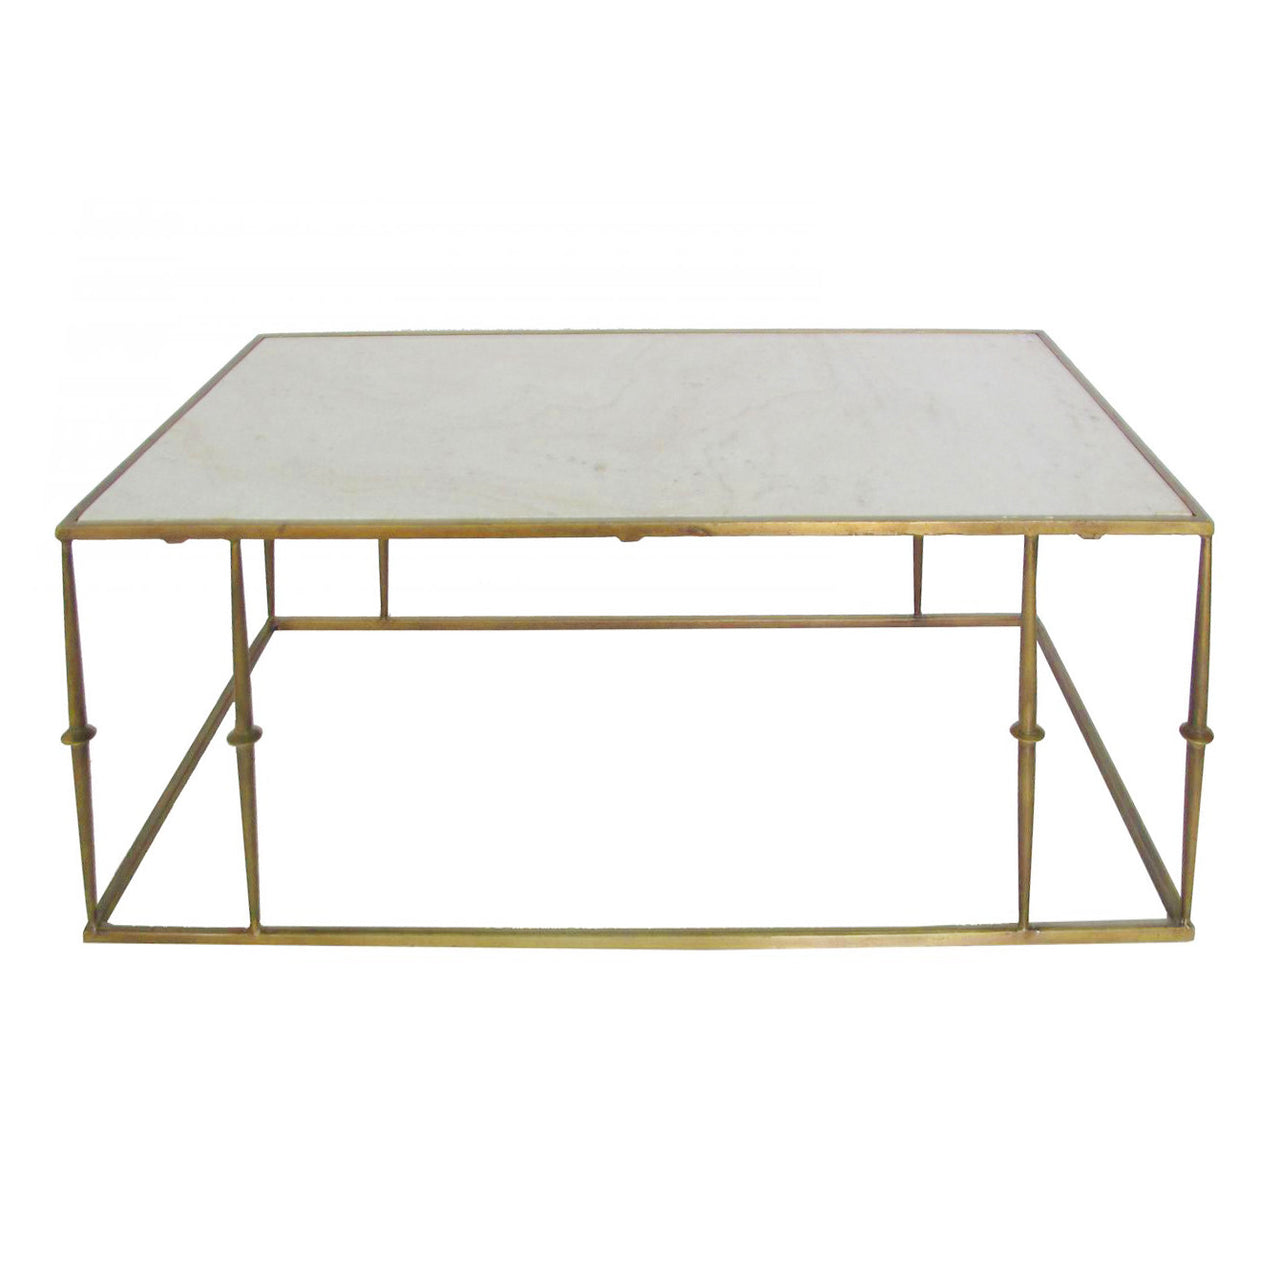 Marble Coffee Table For Sale Singapore: Marble Top Coffee Table